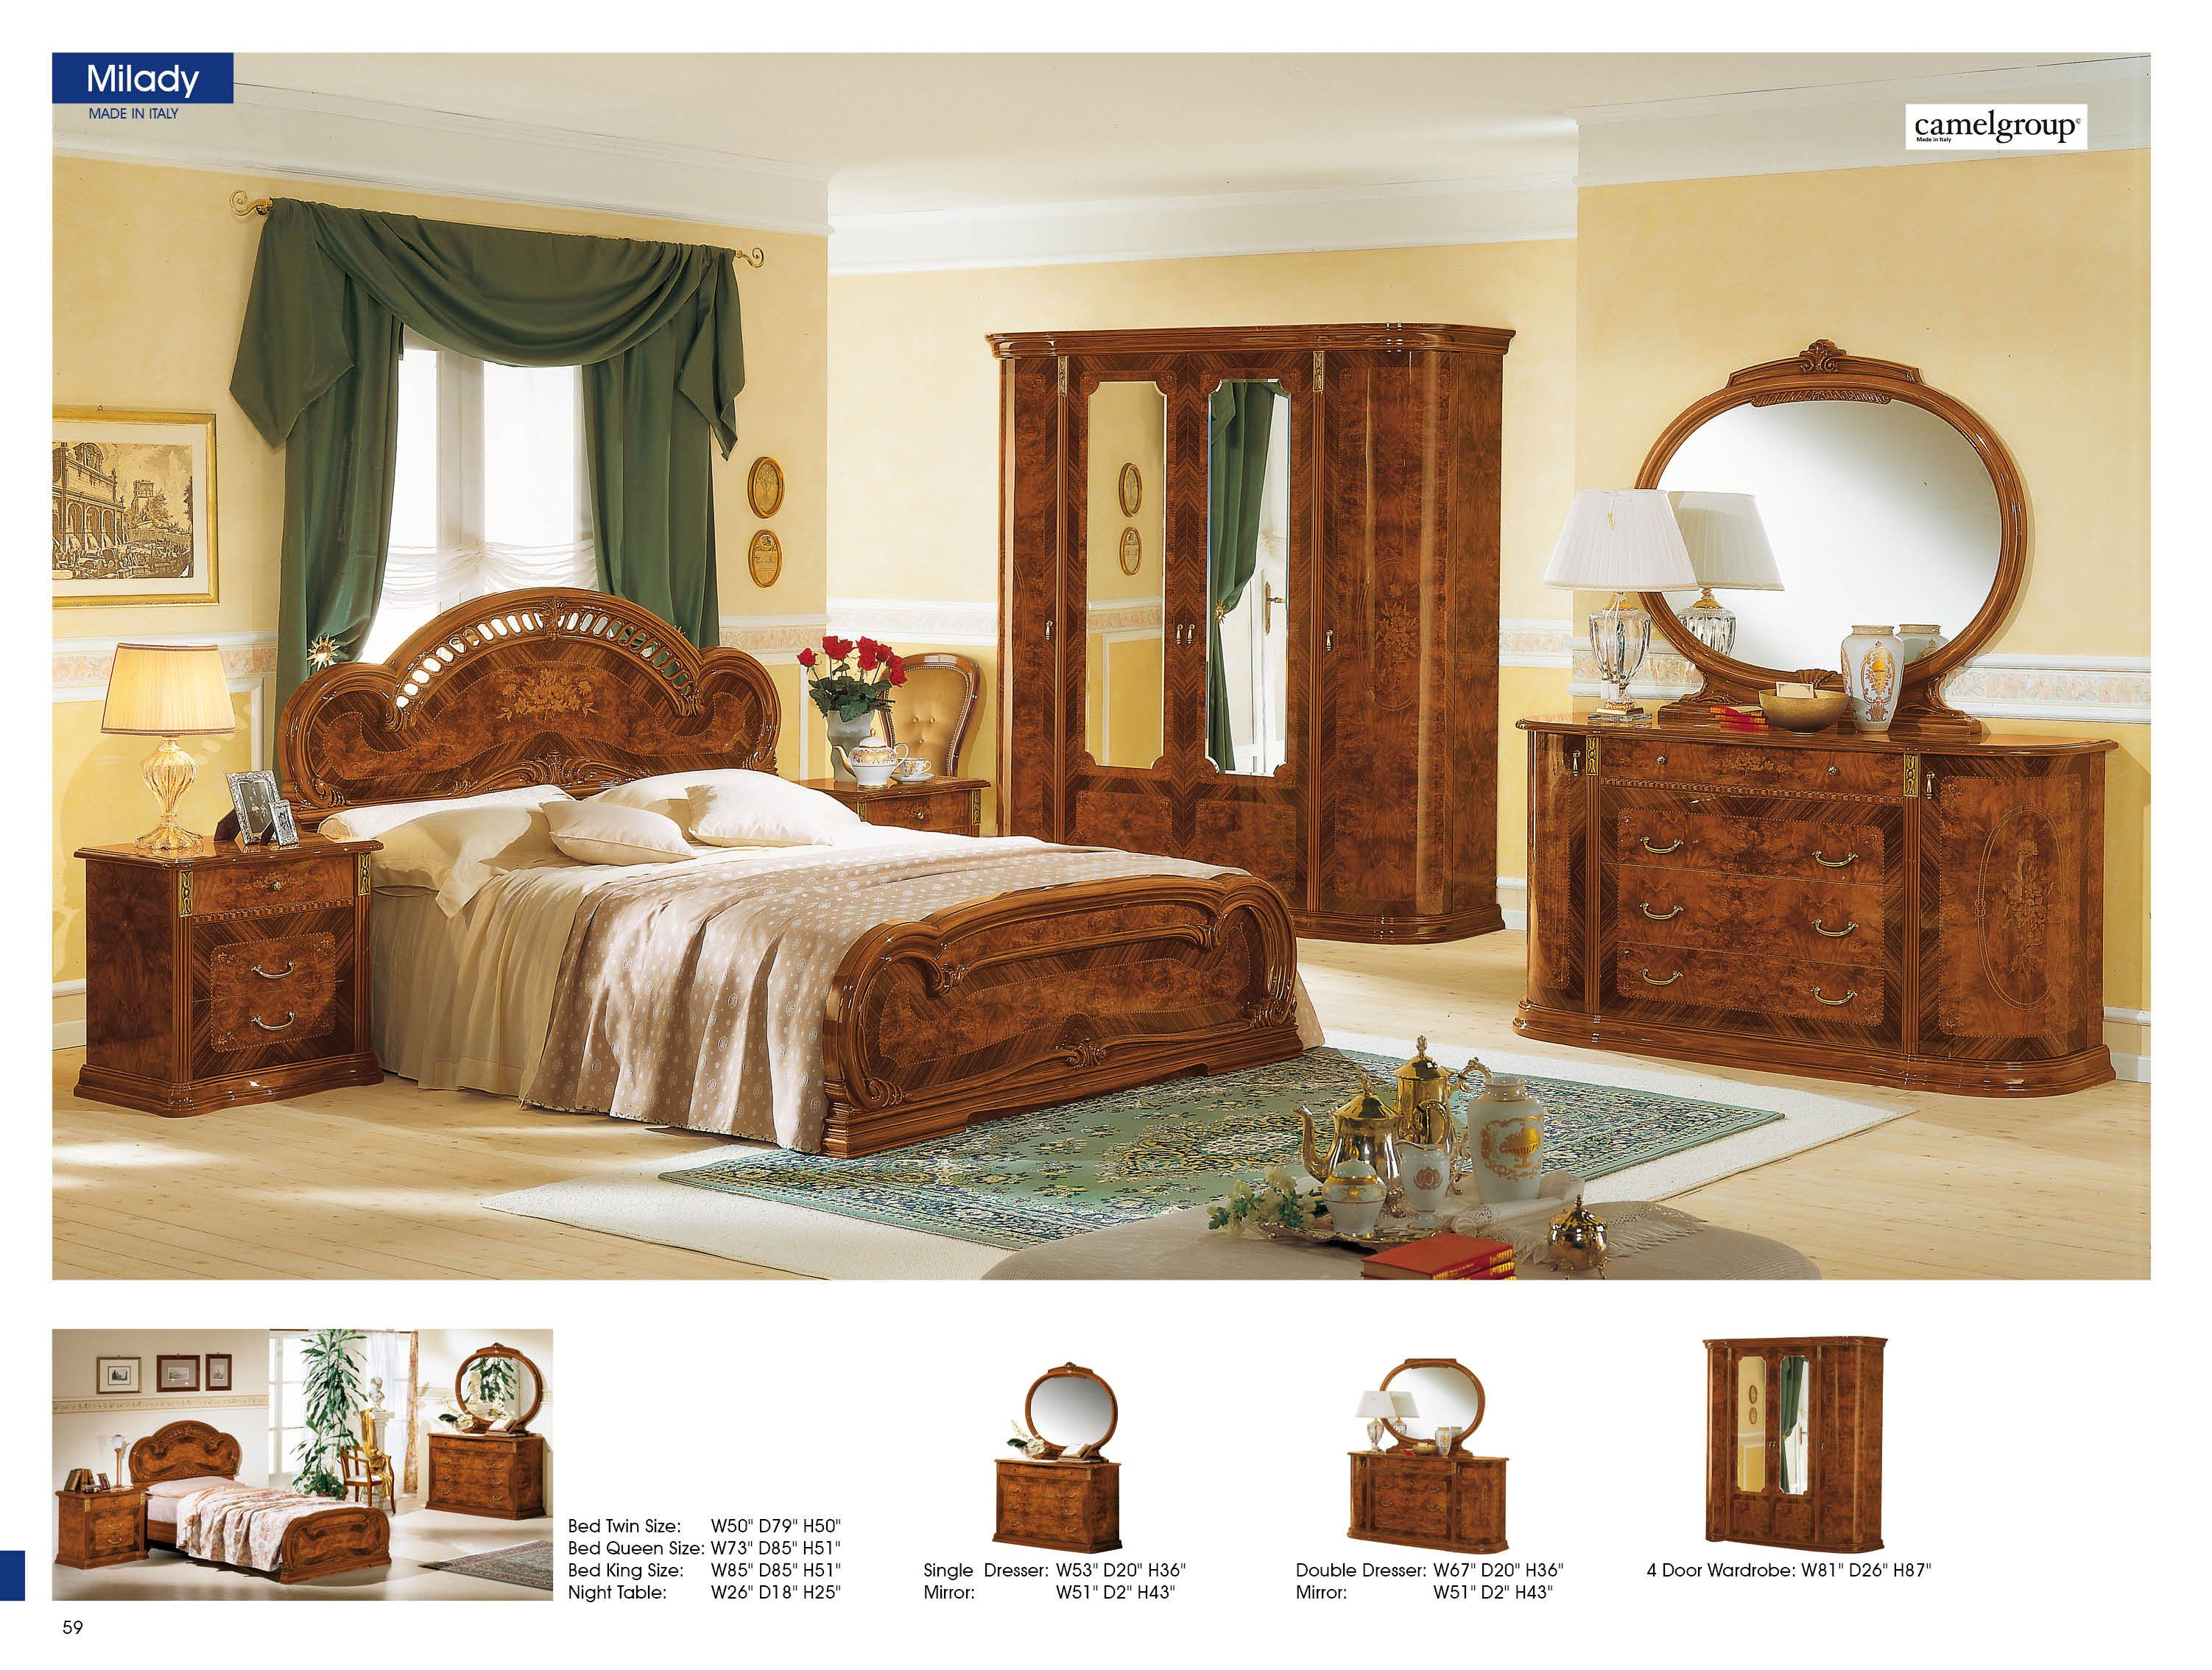 milady walnut camelgroup italy classic bedrooms bedroom furniture ...